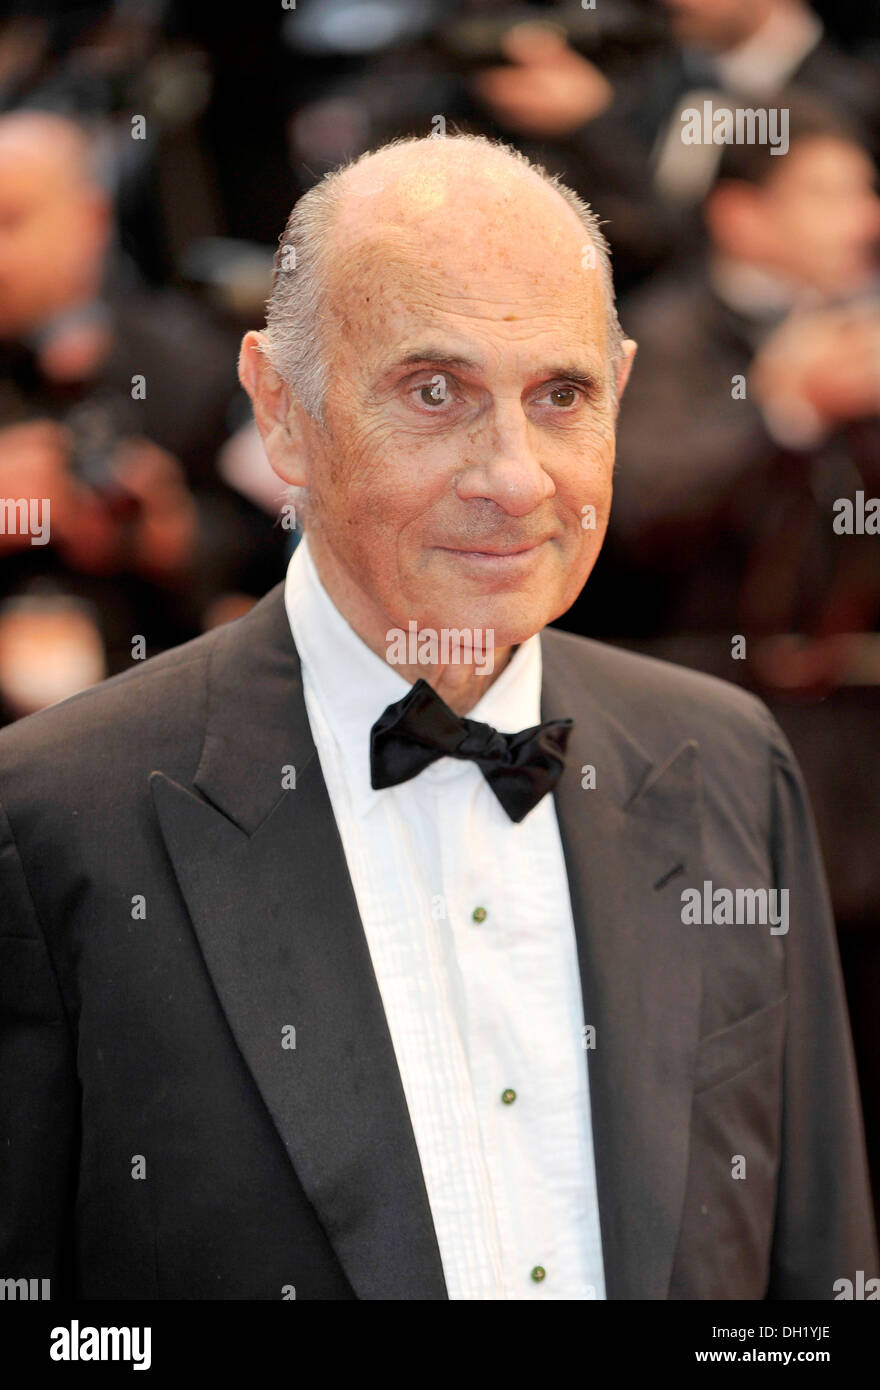 Cannes International Film Festival 2012: Guy Marchand on 2012/05/27